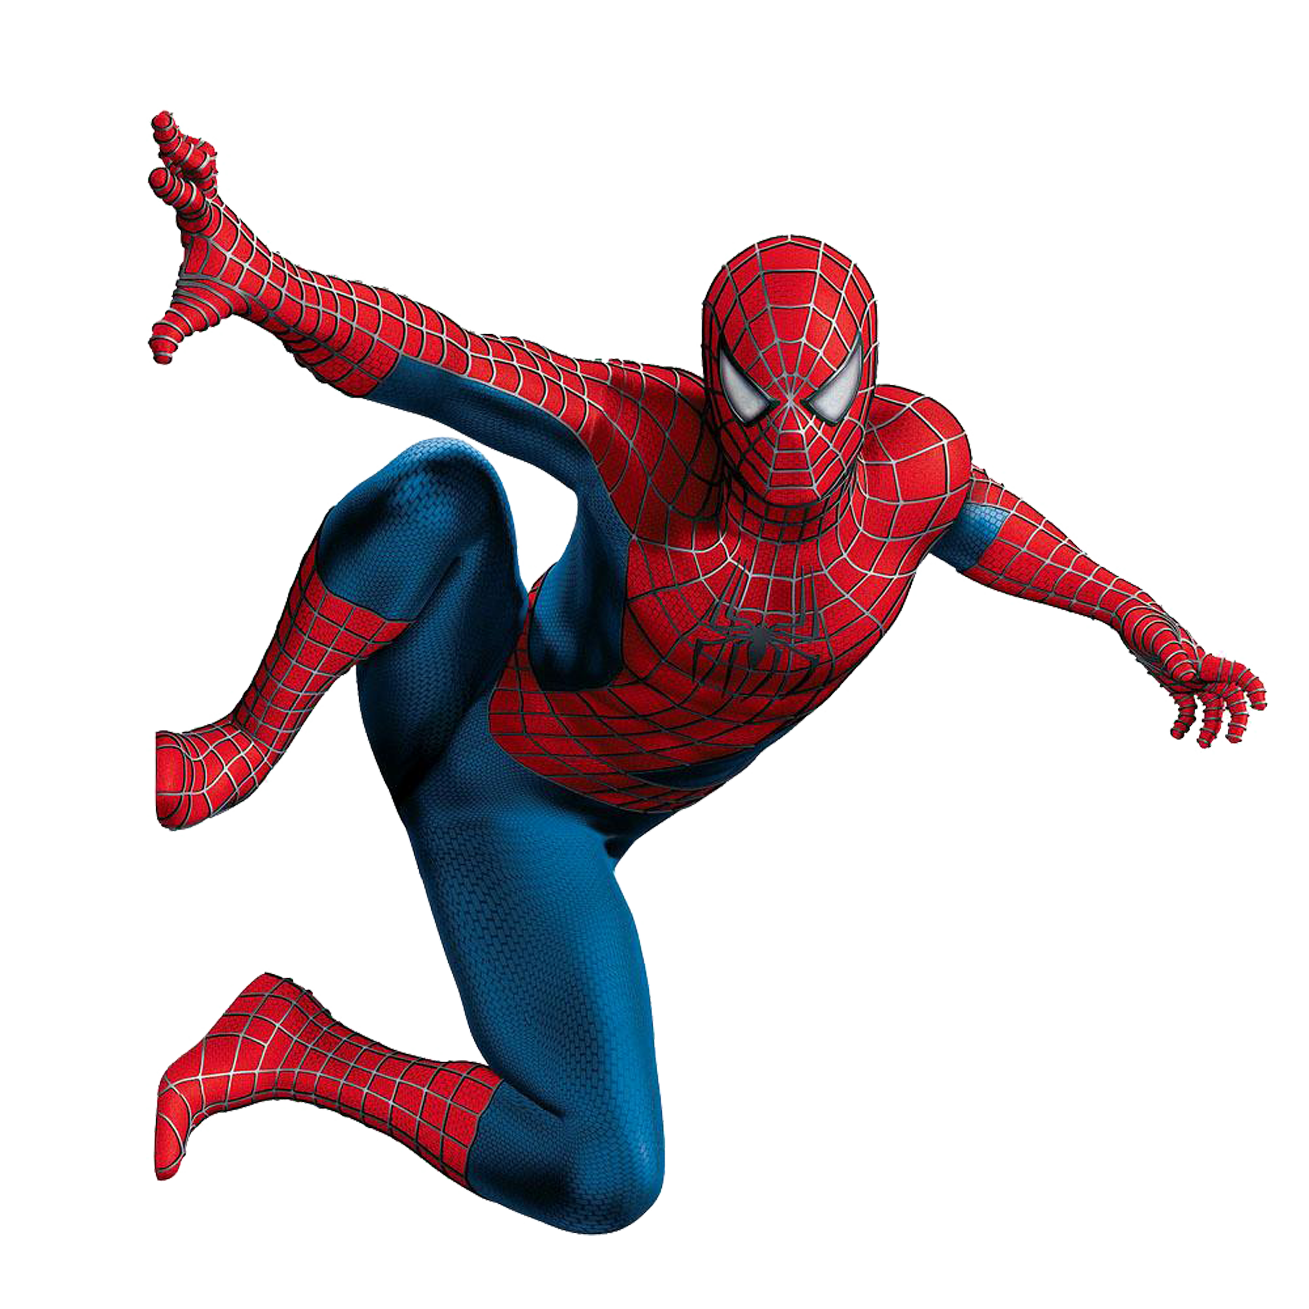 Spider-Man Transparent PNG - Spiderman HD PNG